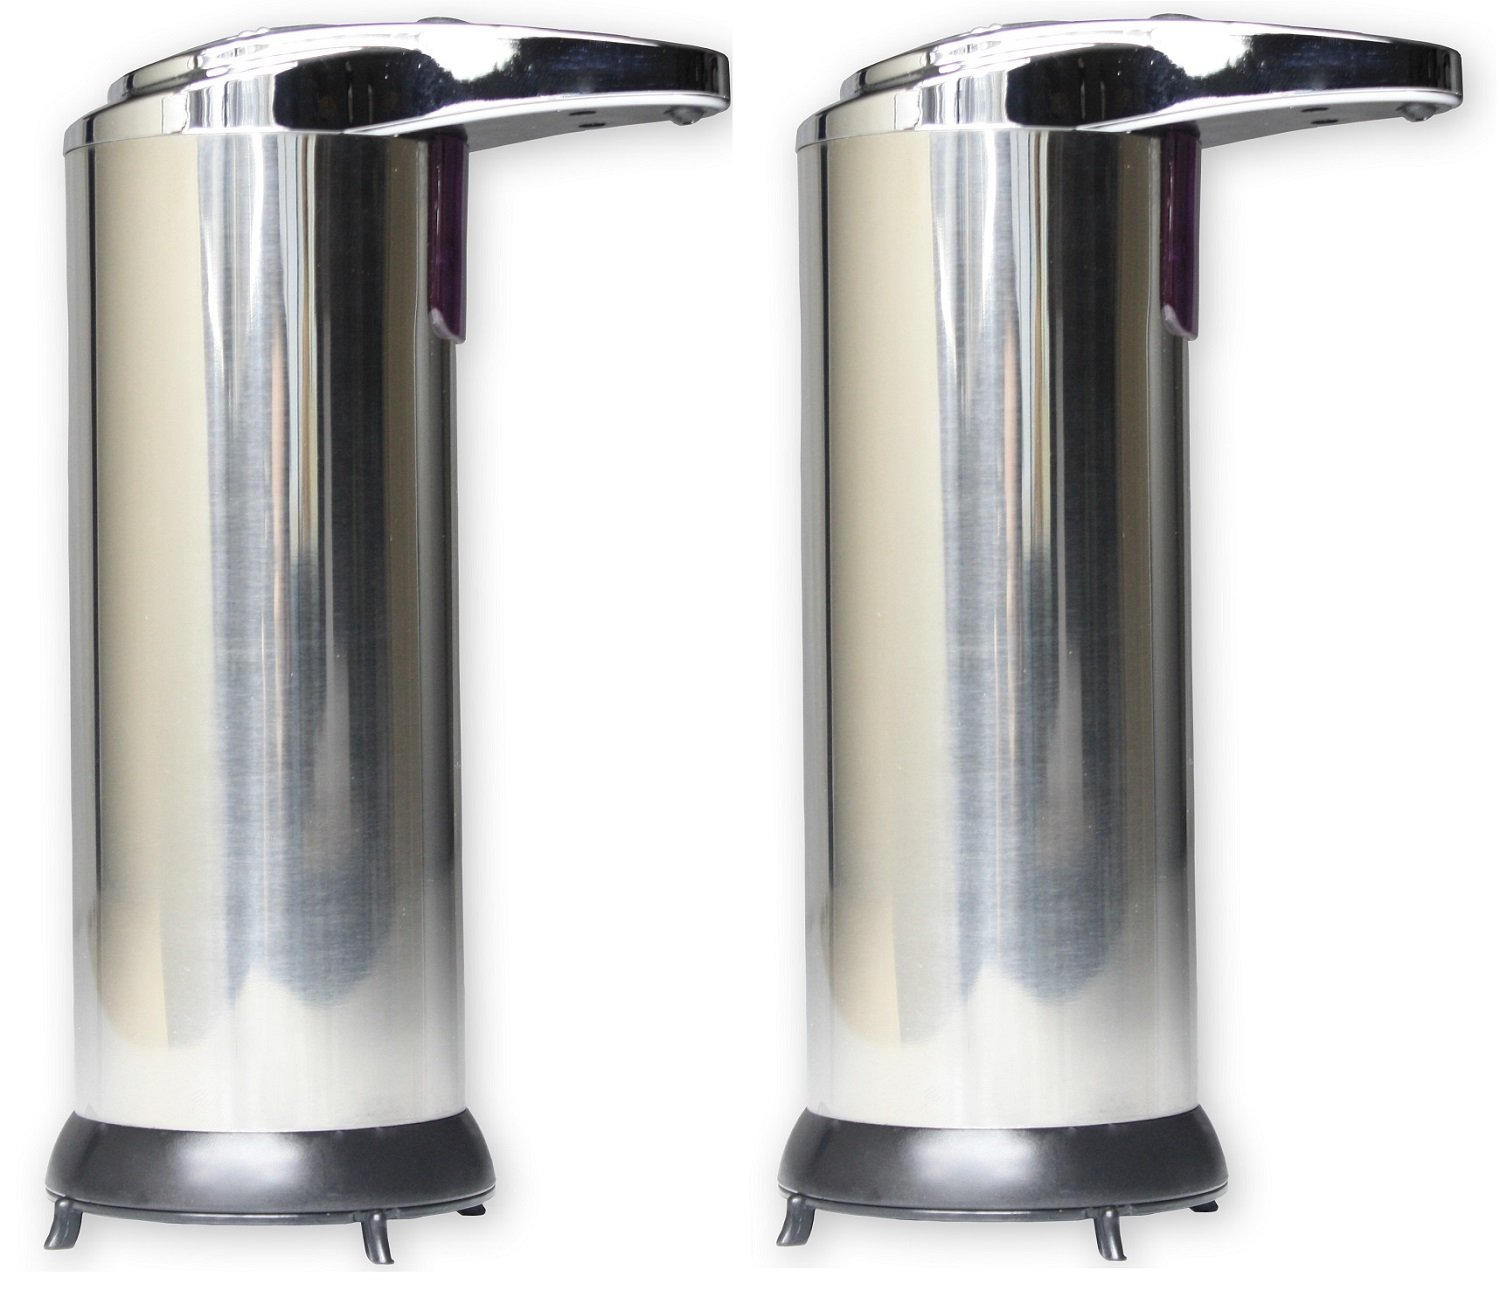 2 X Hausen Automatic Hands Free Chrome Bathroom Kitchen Liquid